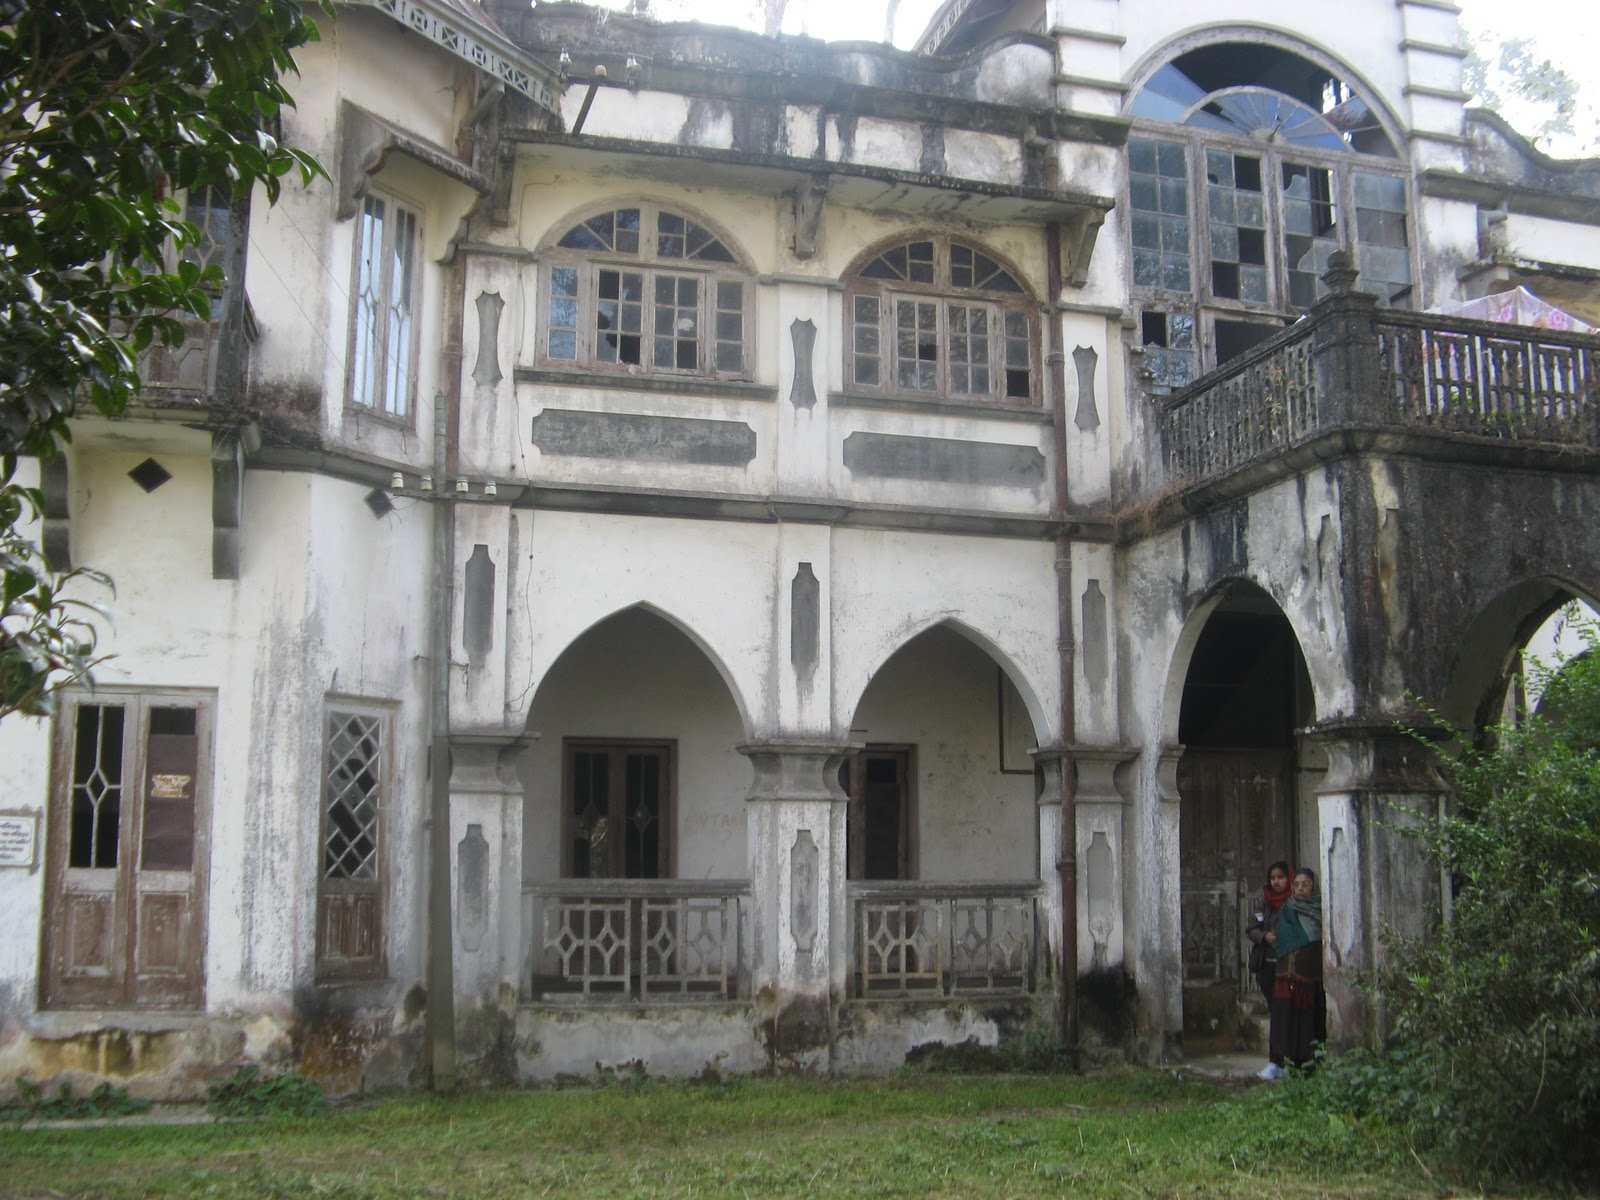 shantinikaten home of rabindranath tagore Shantiniketan gave us many of rabindranath tagore's literary classics we give you a tourist guide to this university town some call it the old retreat of the bourgeoisie, while for some it means rediscovering their artistic genes.